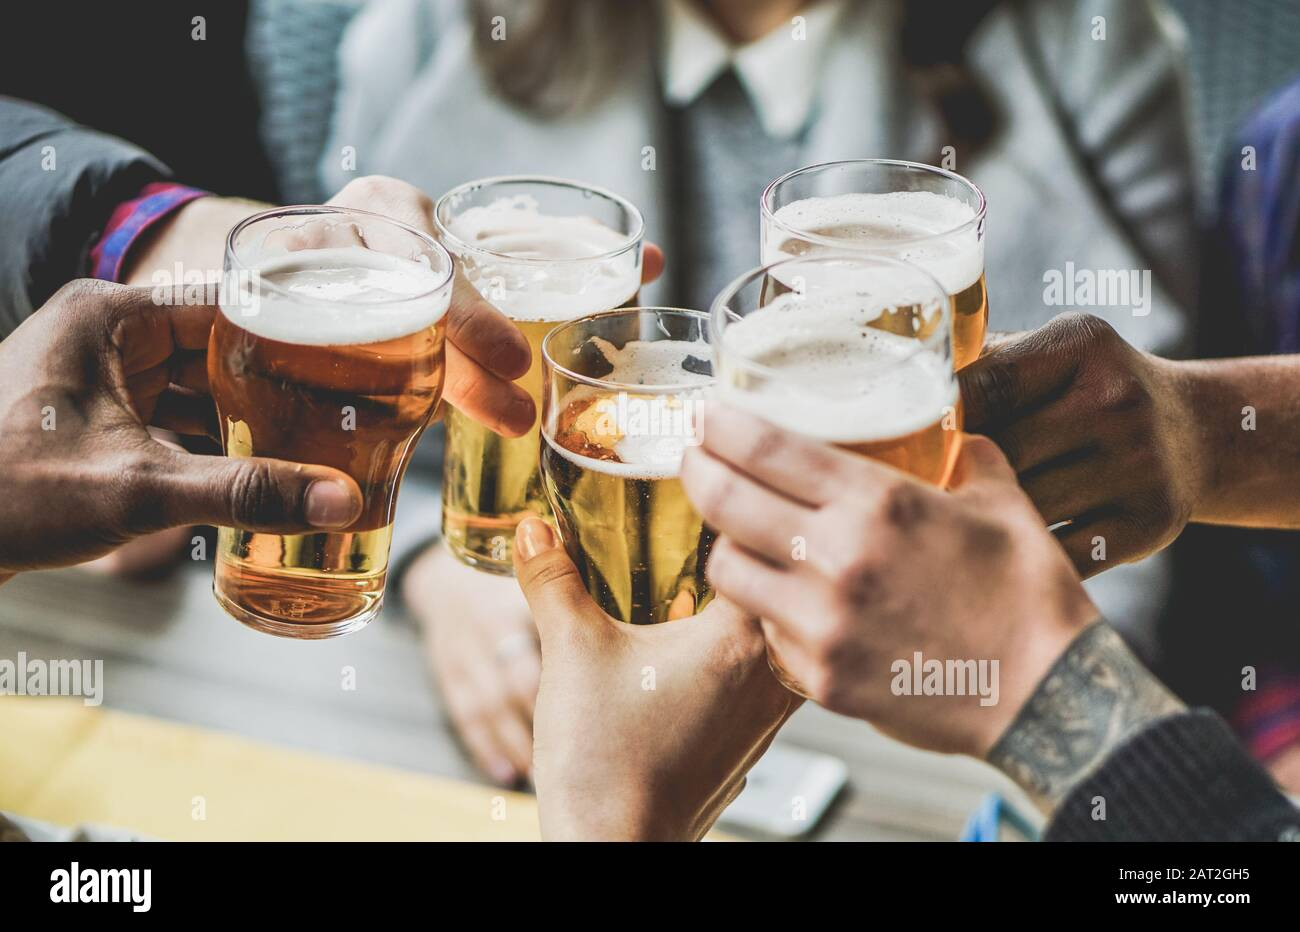 Group of friends enjoying a beer in brewery pub - Young people hands cheering at bar restaurant - Friendship and youth concept - Warm vintage filter - Stock Photo